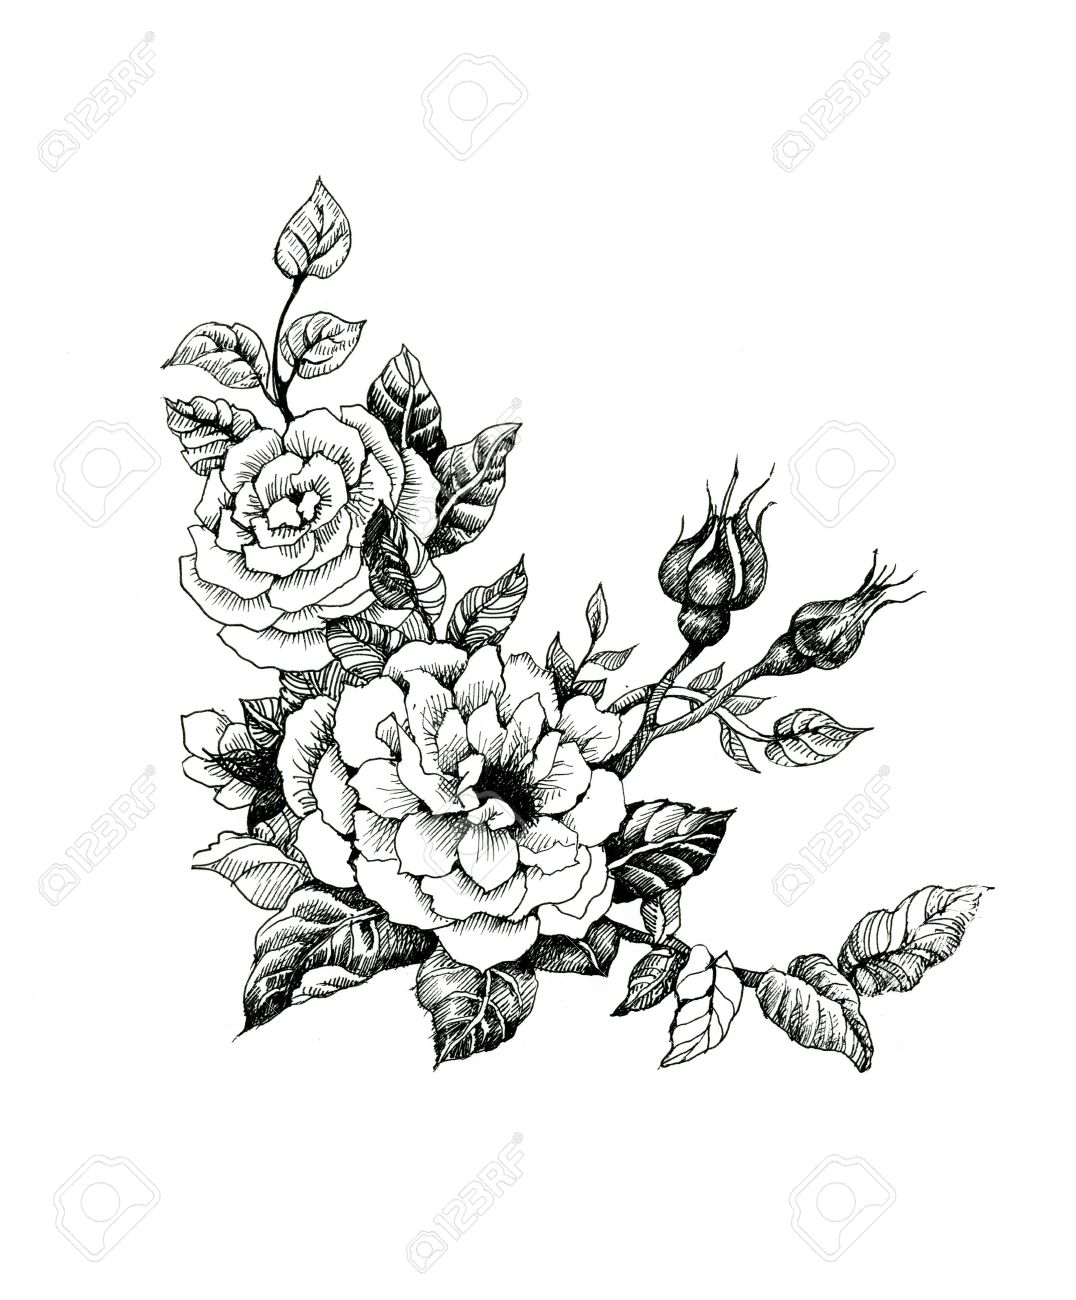 Watercolor flowers illustration in black and white